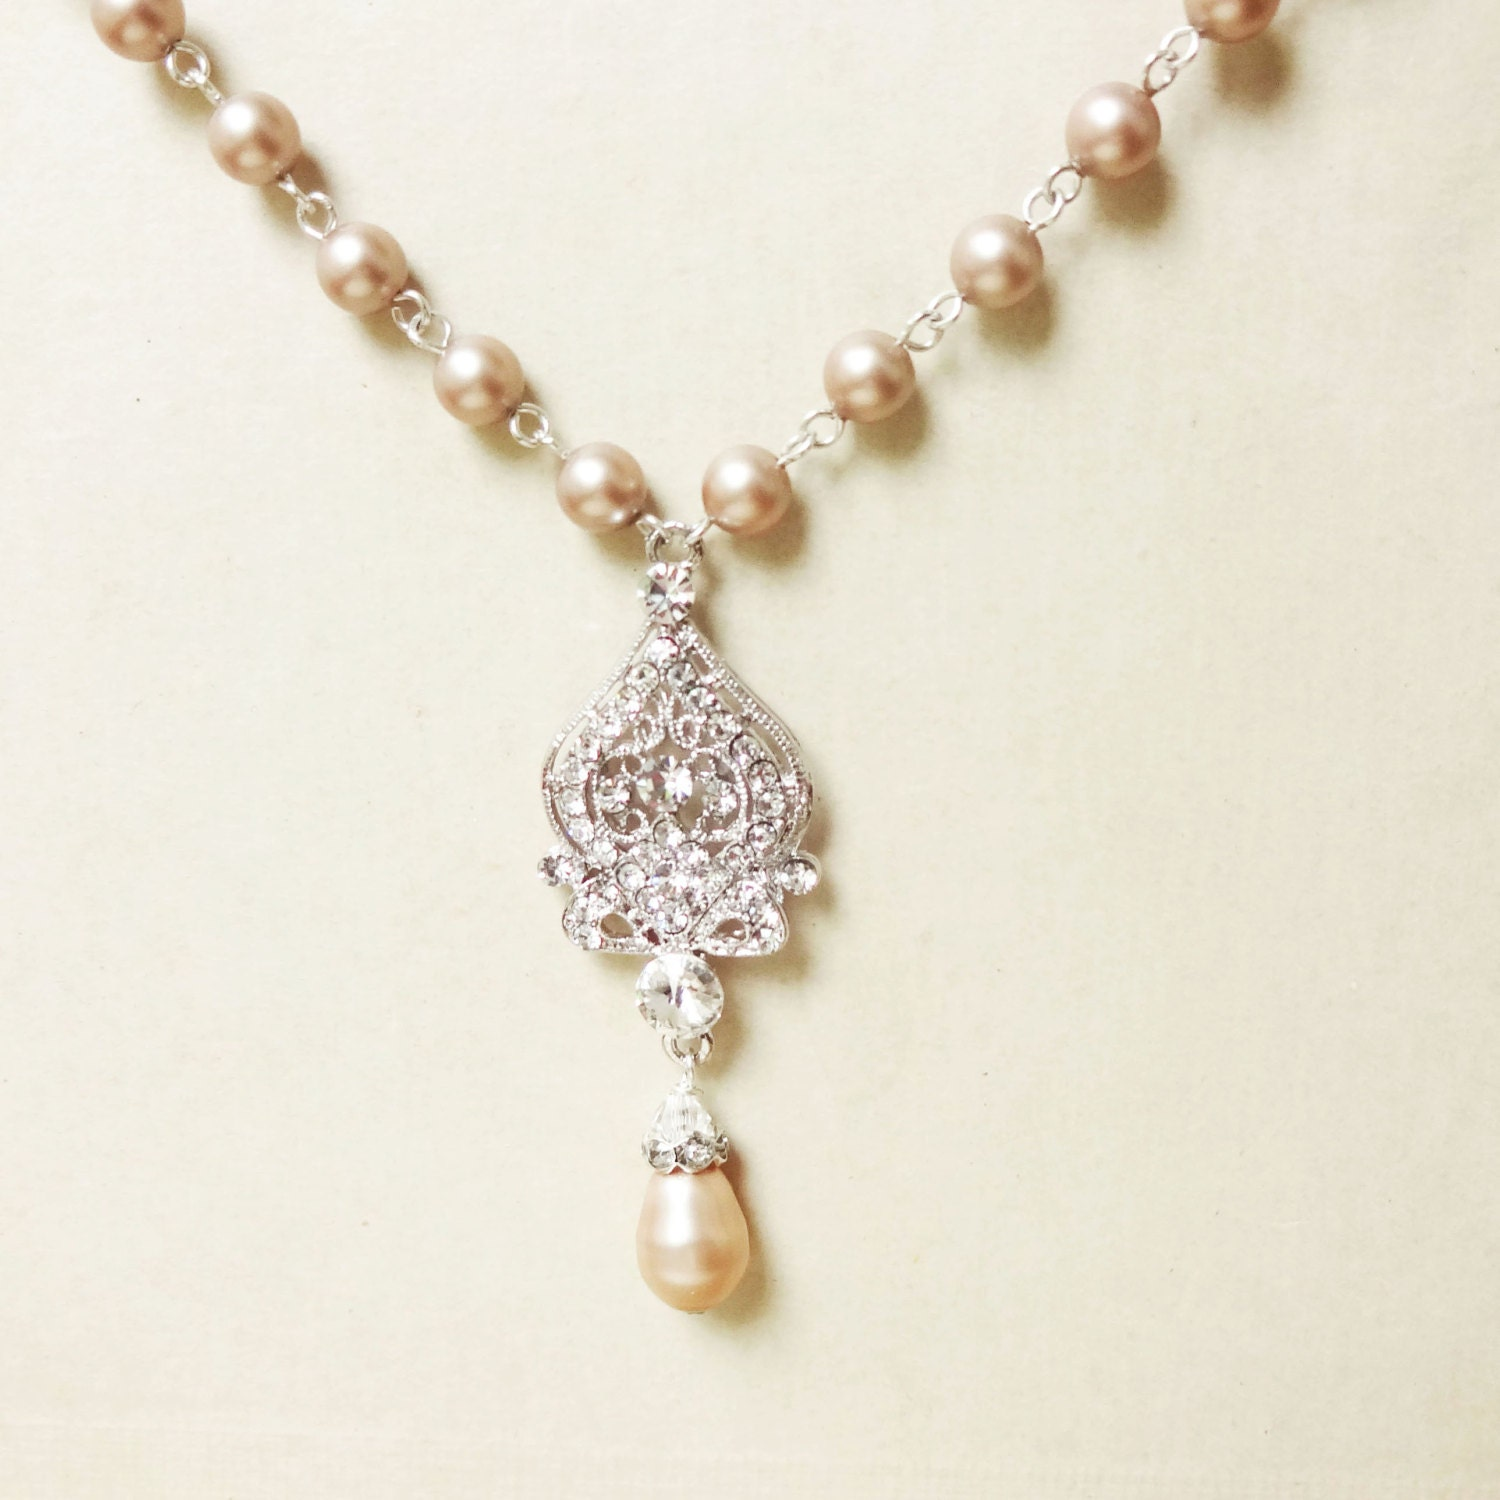 Champagne bridal necklace wedding jewelry champagne pearl for Jewelry for champagne wedding dress